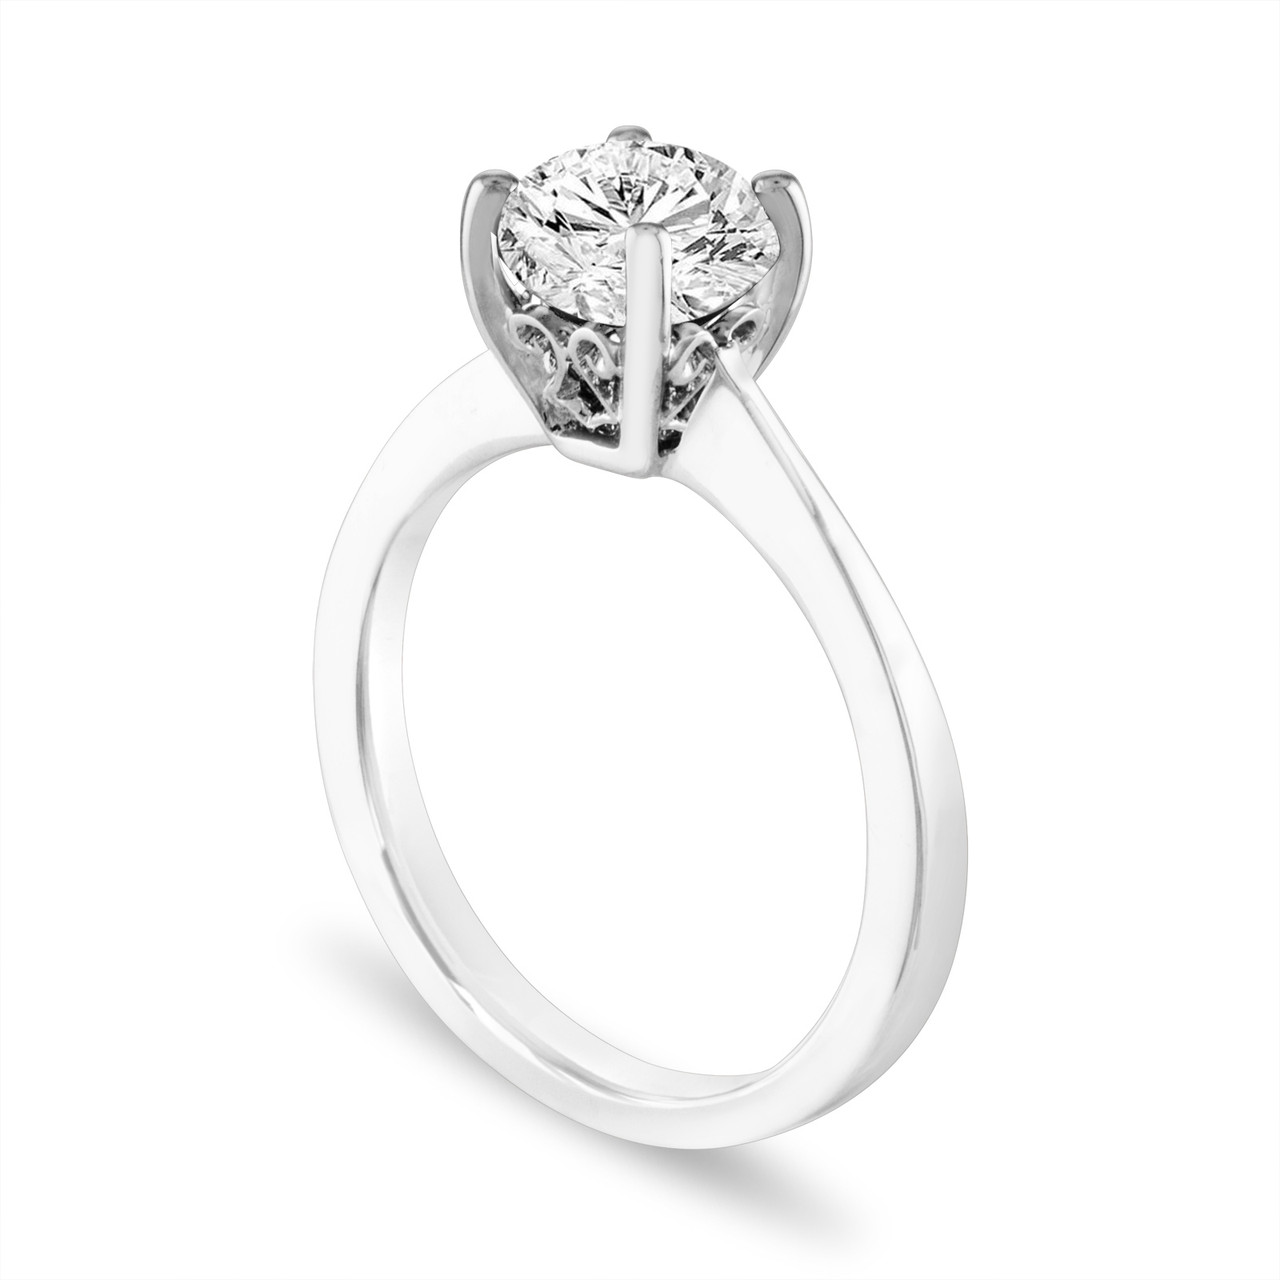 83a401e147da4 1.01 Carat Diamond Solitaire Engagement Ring, Scroll Filigree Bridal Ring  GIA Certified 14K White Gold or Rose Gold Handmade Gallery Designs